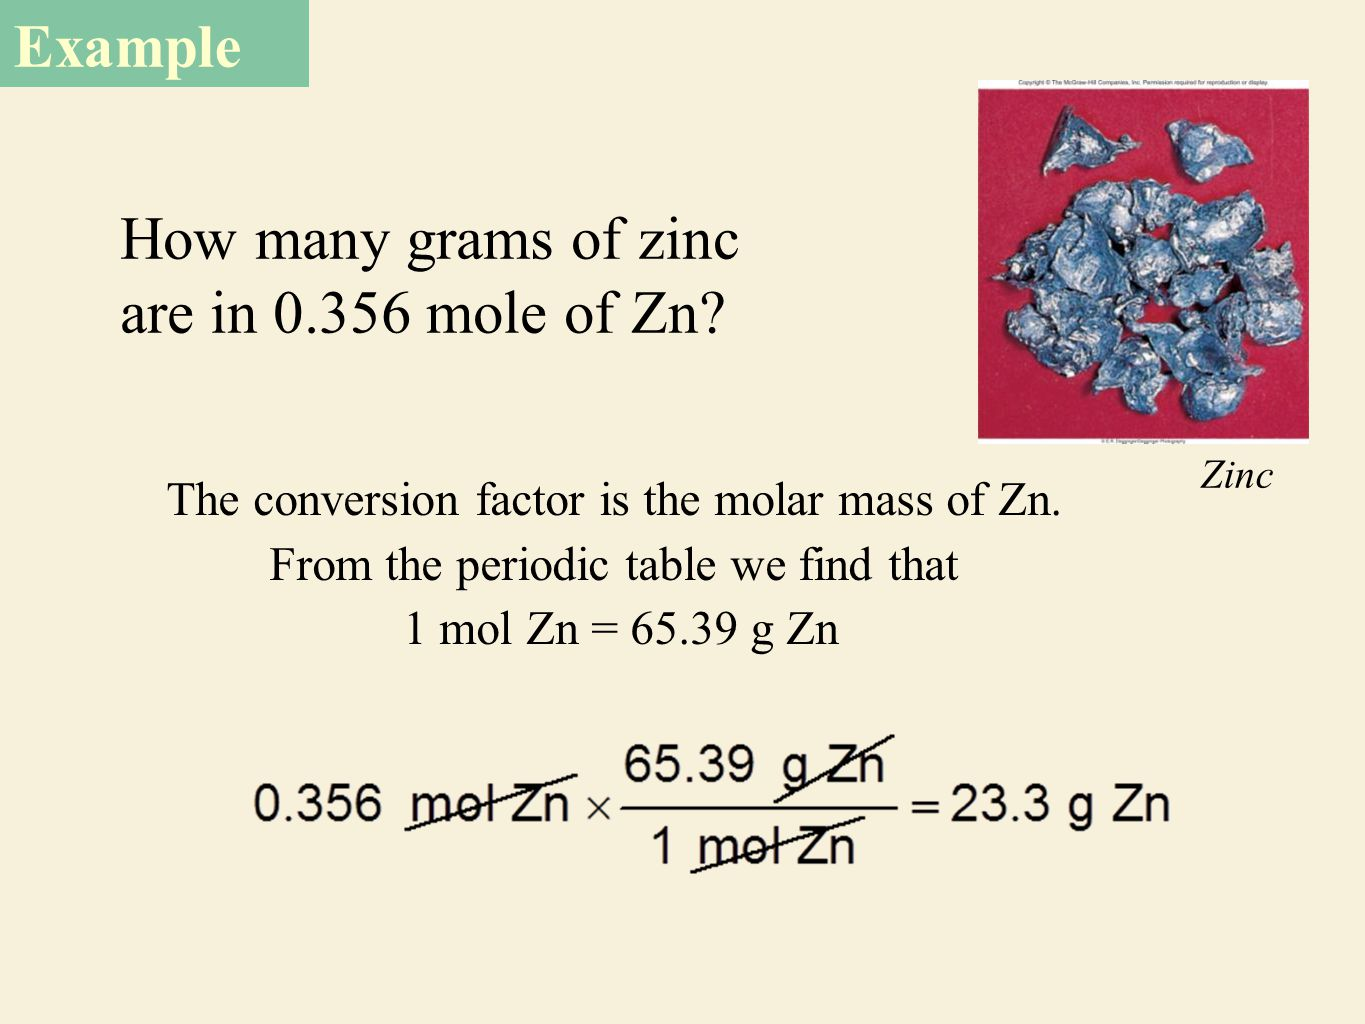 Mass relationships in chemical reactions ppt download how many grams of zinc are in 0356 mole of zn gamestrikefo Image collections